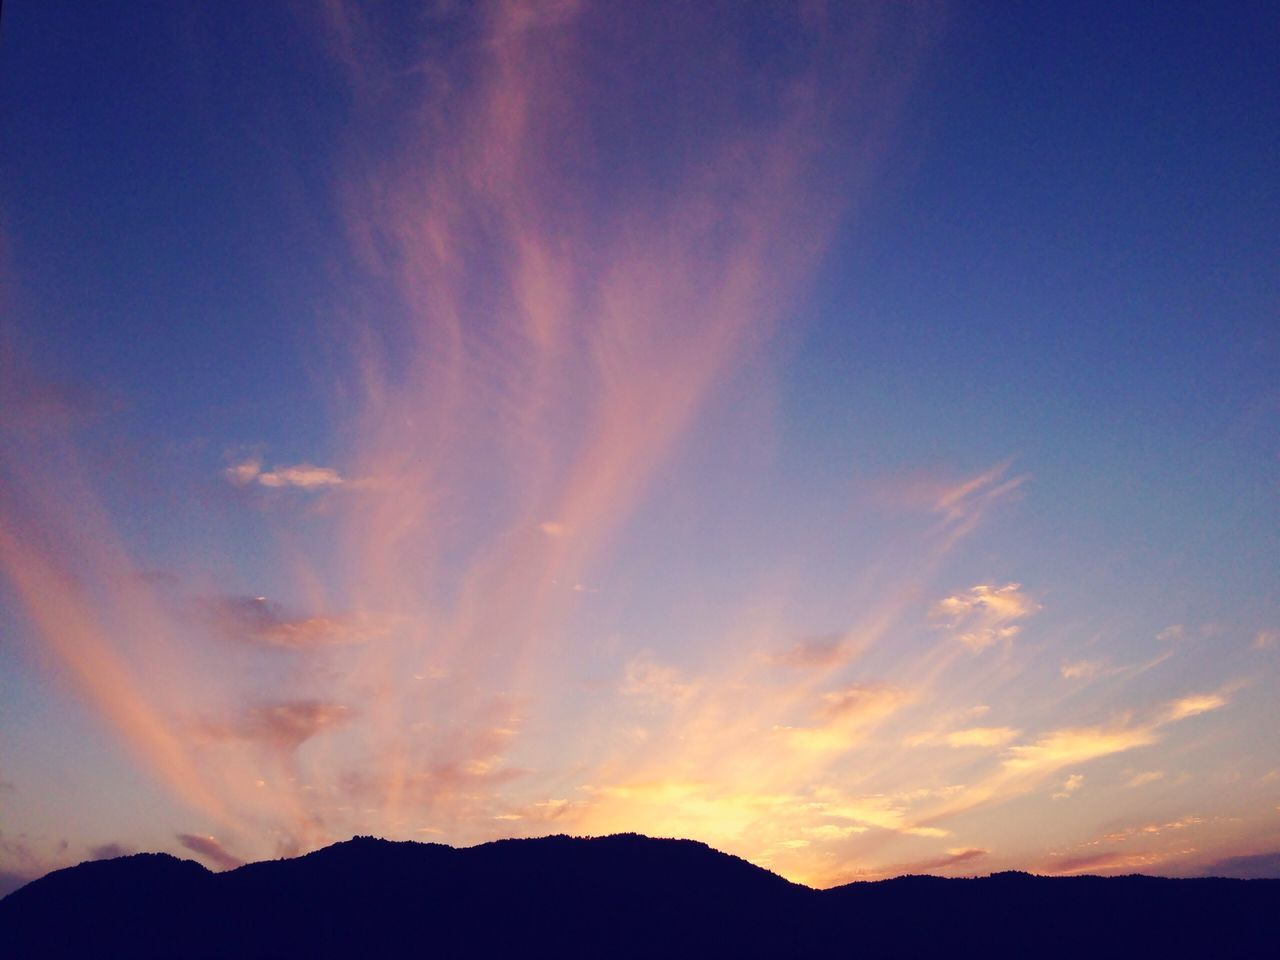 scenics, beauty in nature, silhouette, nature, sky, tranquil scene, tranquility, sunset, no people, outdoors, mountain, cloud - sky, day